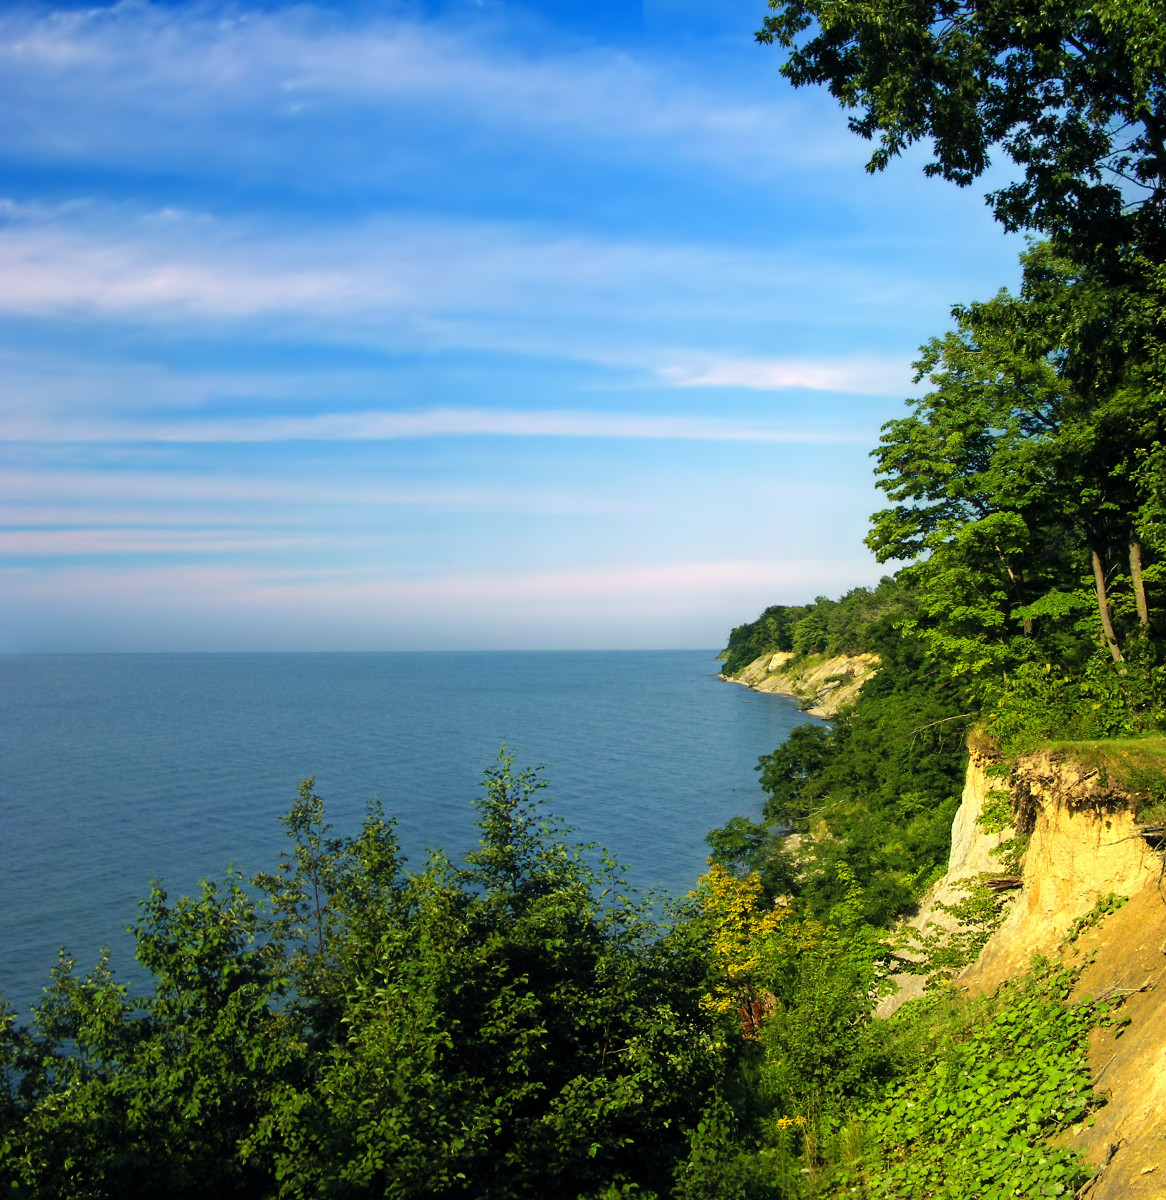 Lake Erie bluffs, David M. Roderick Wildlife Reserve, Erie County, Pennsylvania.